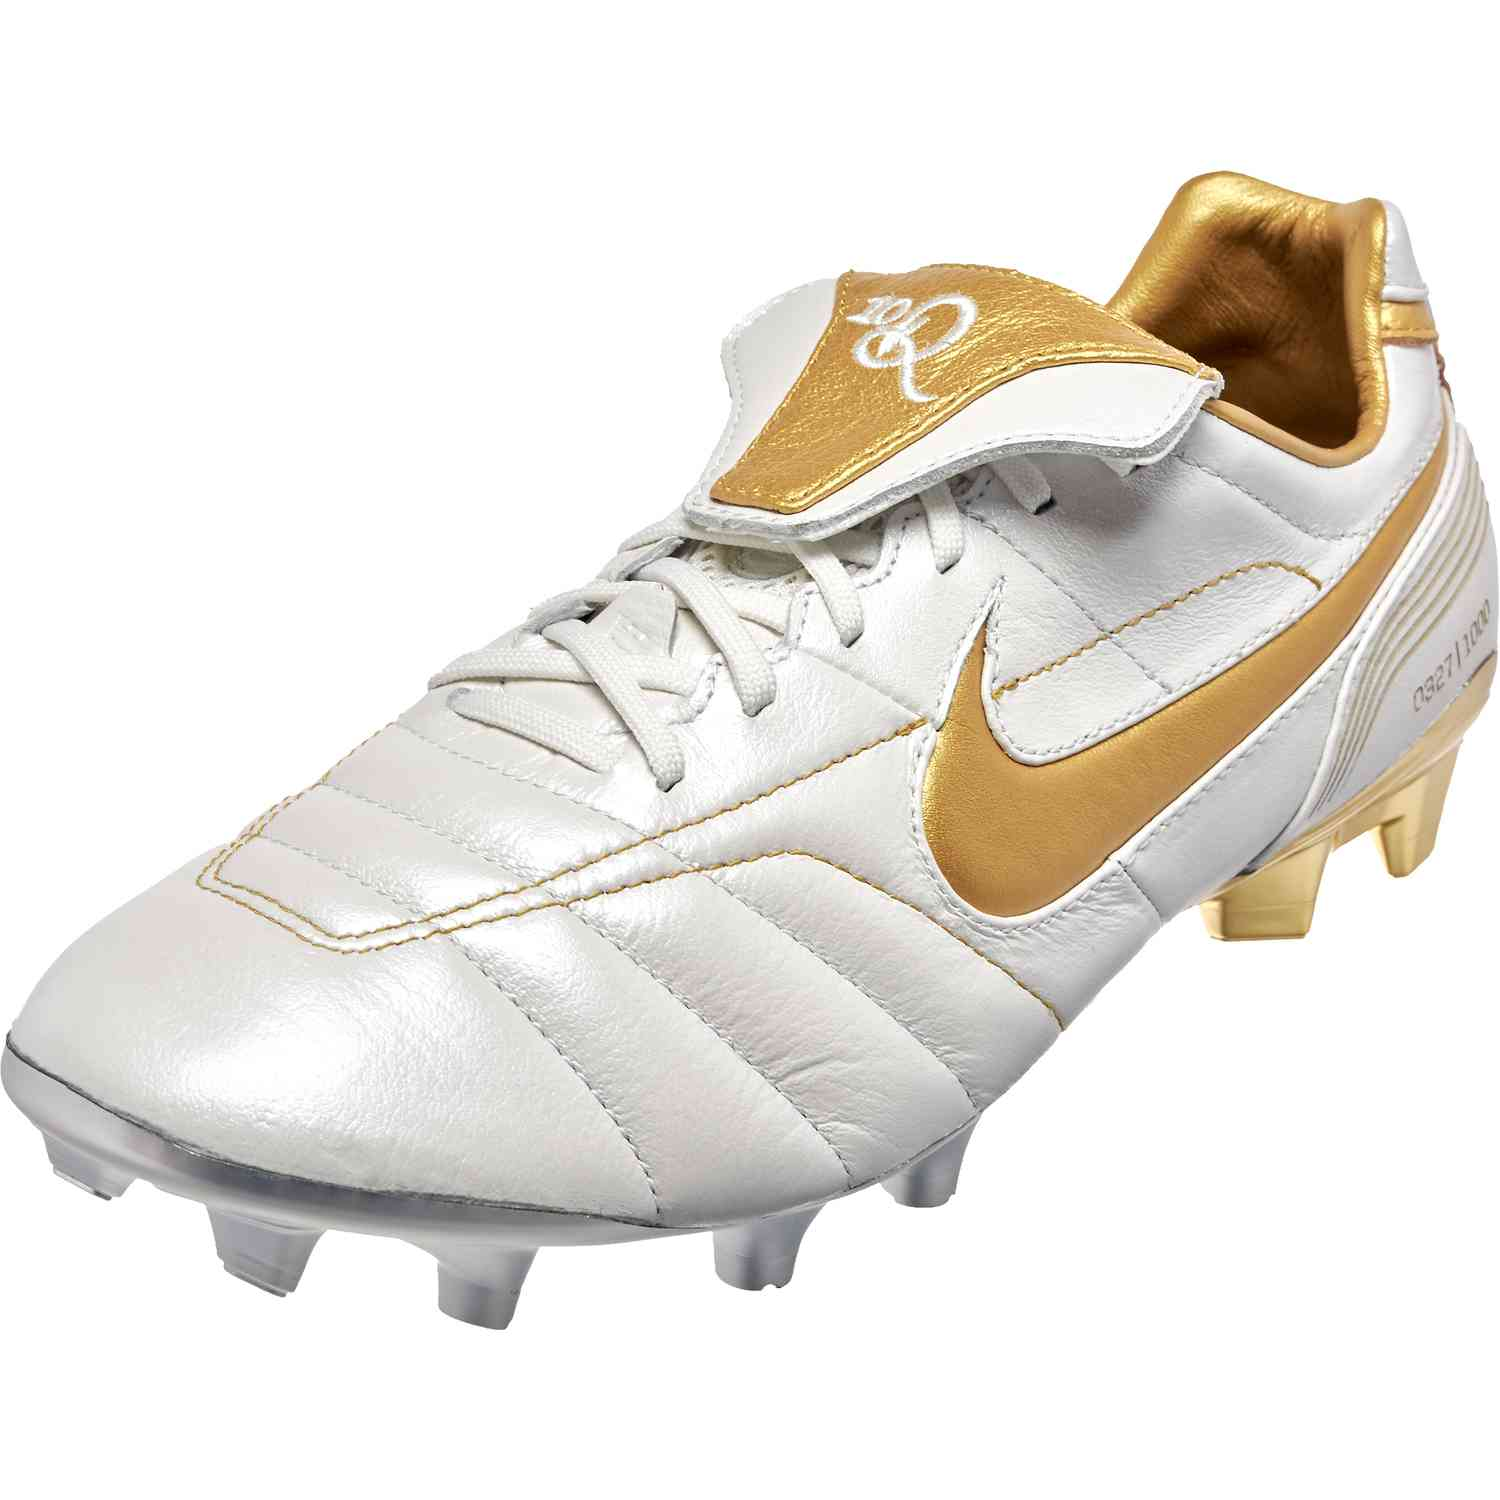 the latest ef832 cf9c5 Nike Tiempo Legend VII 10R - Ronaldinho edition - SoccerPro.com